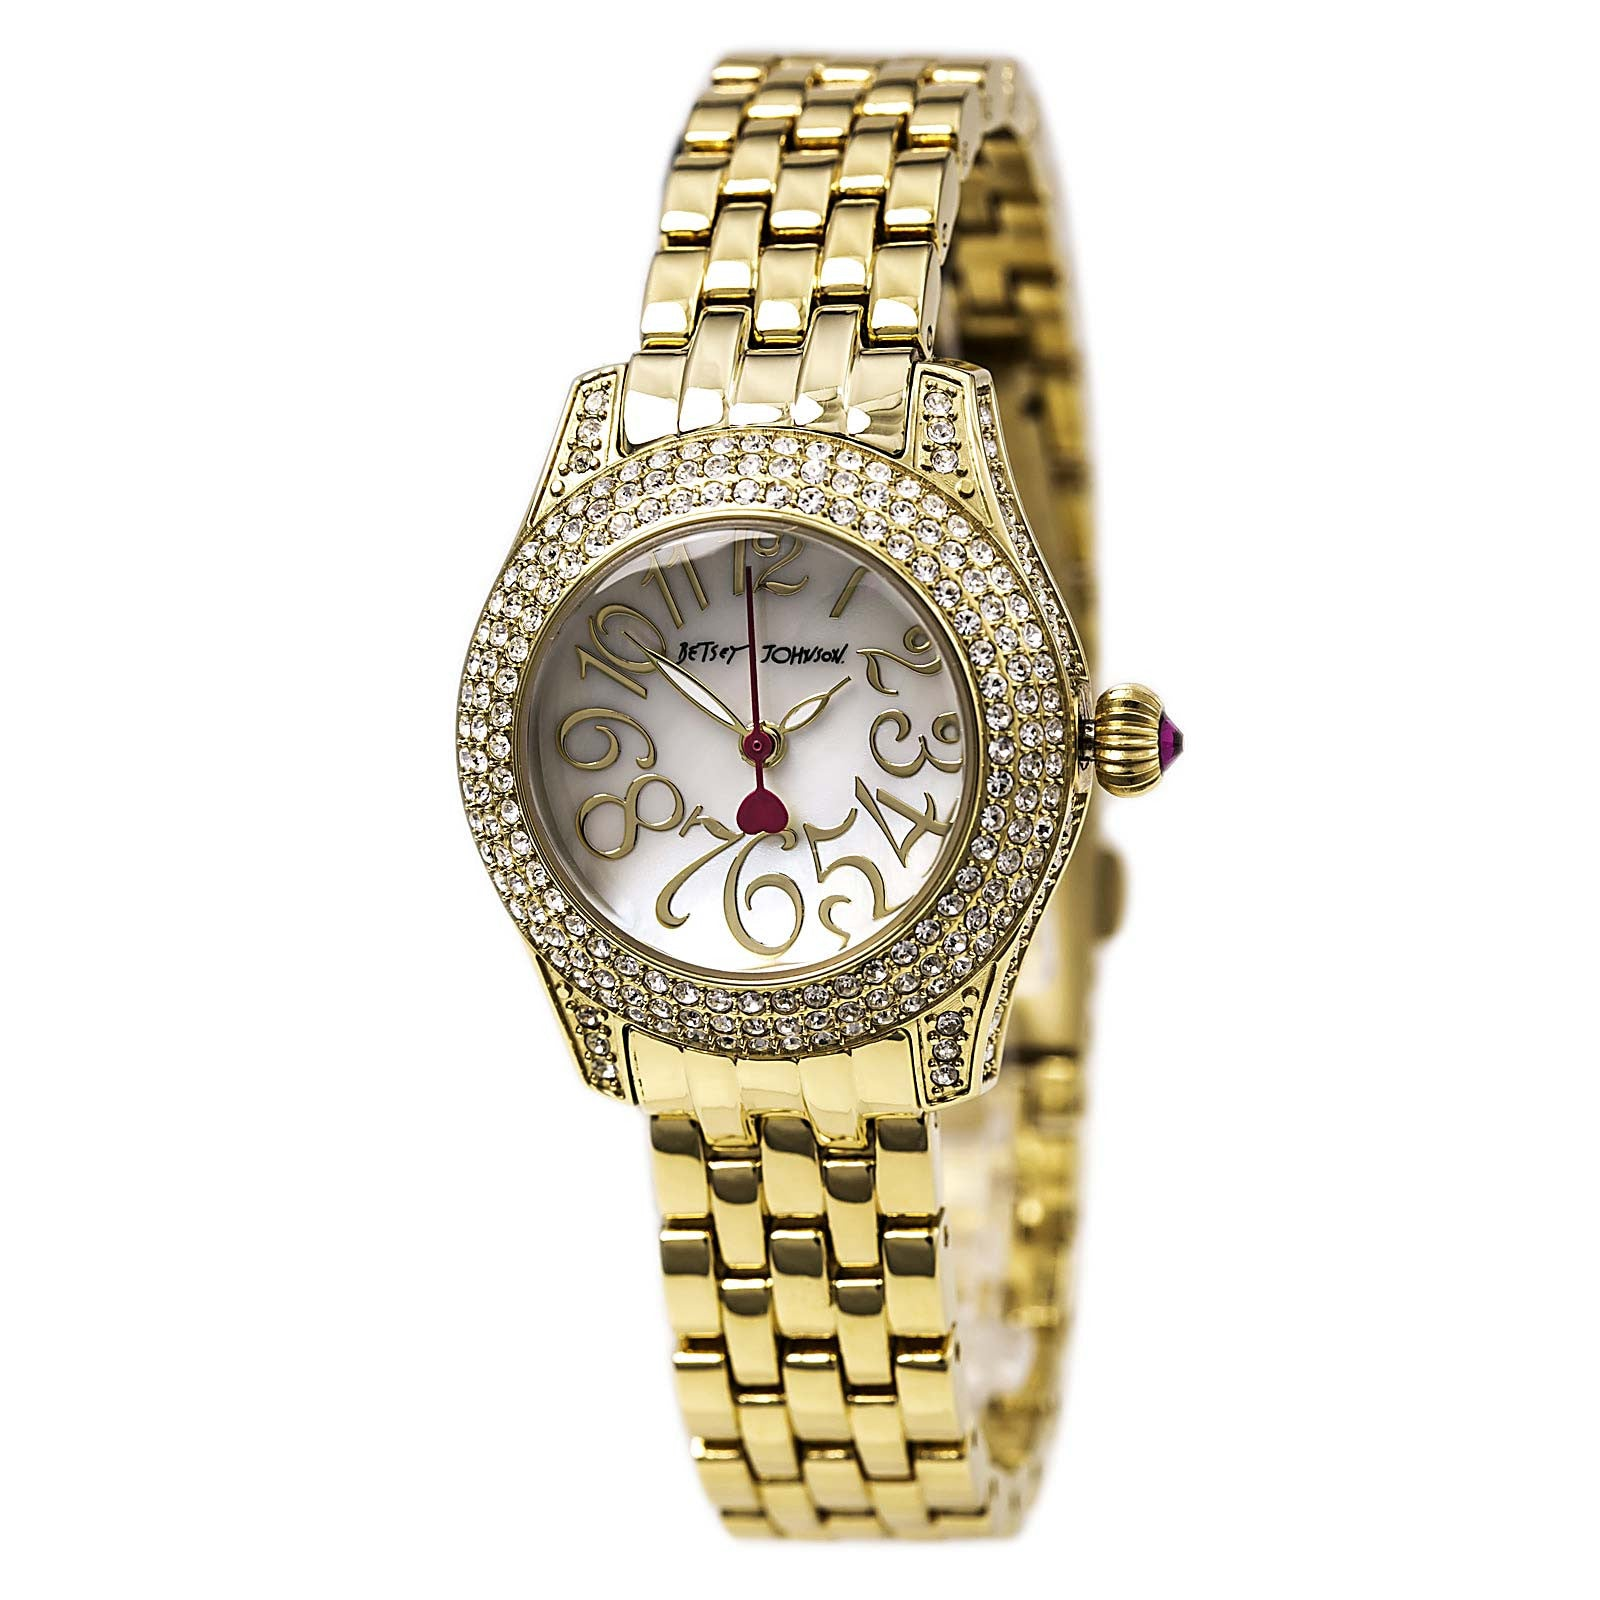 Betsey Johnson BJ00193-06 Women's MOP Dial Yellow Gold Steel Bracelet Watch